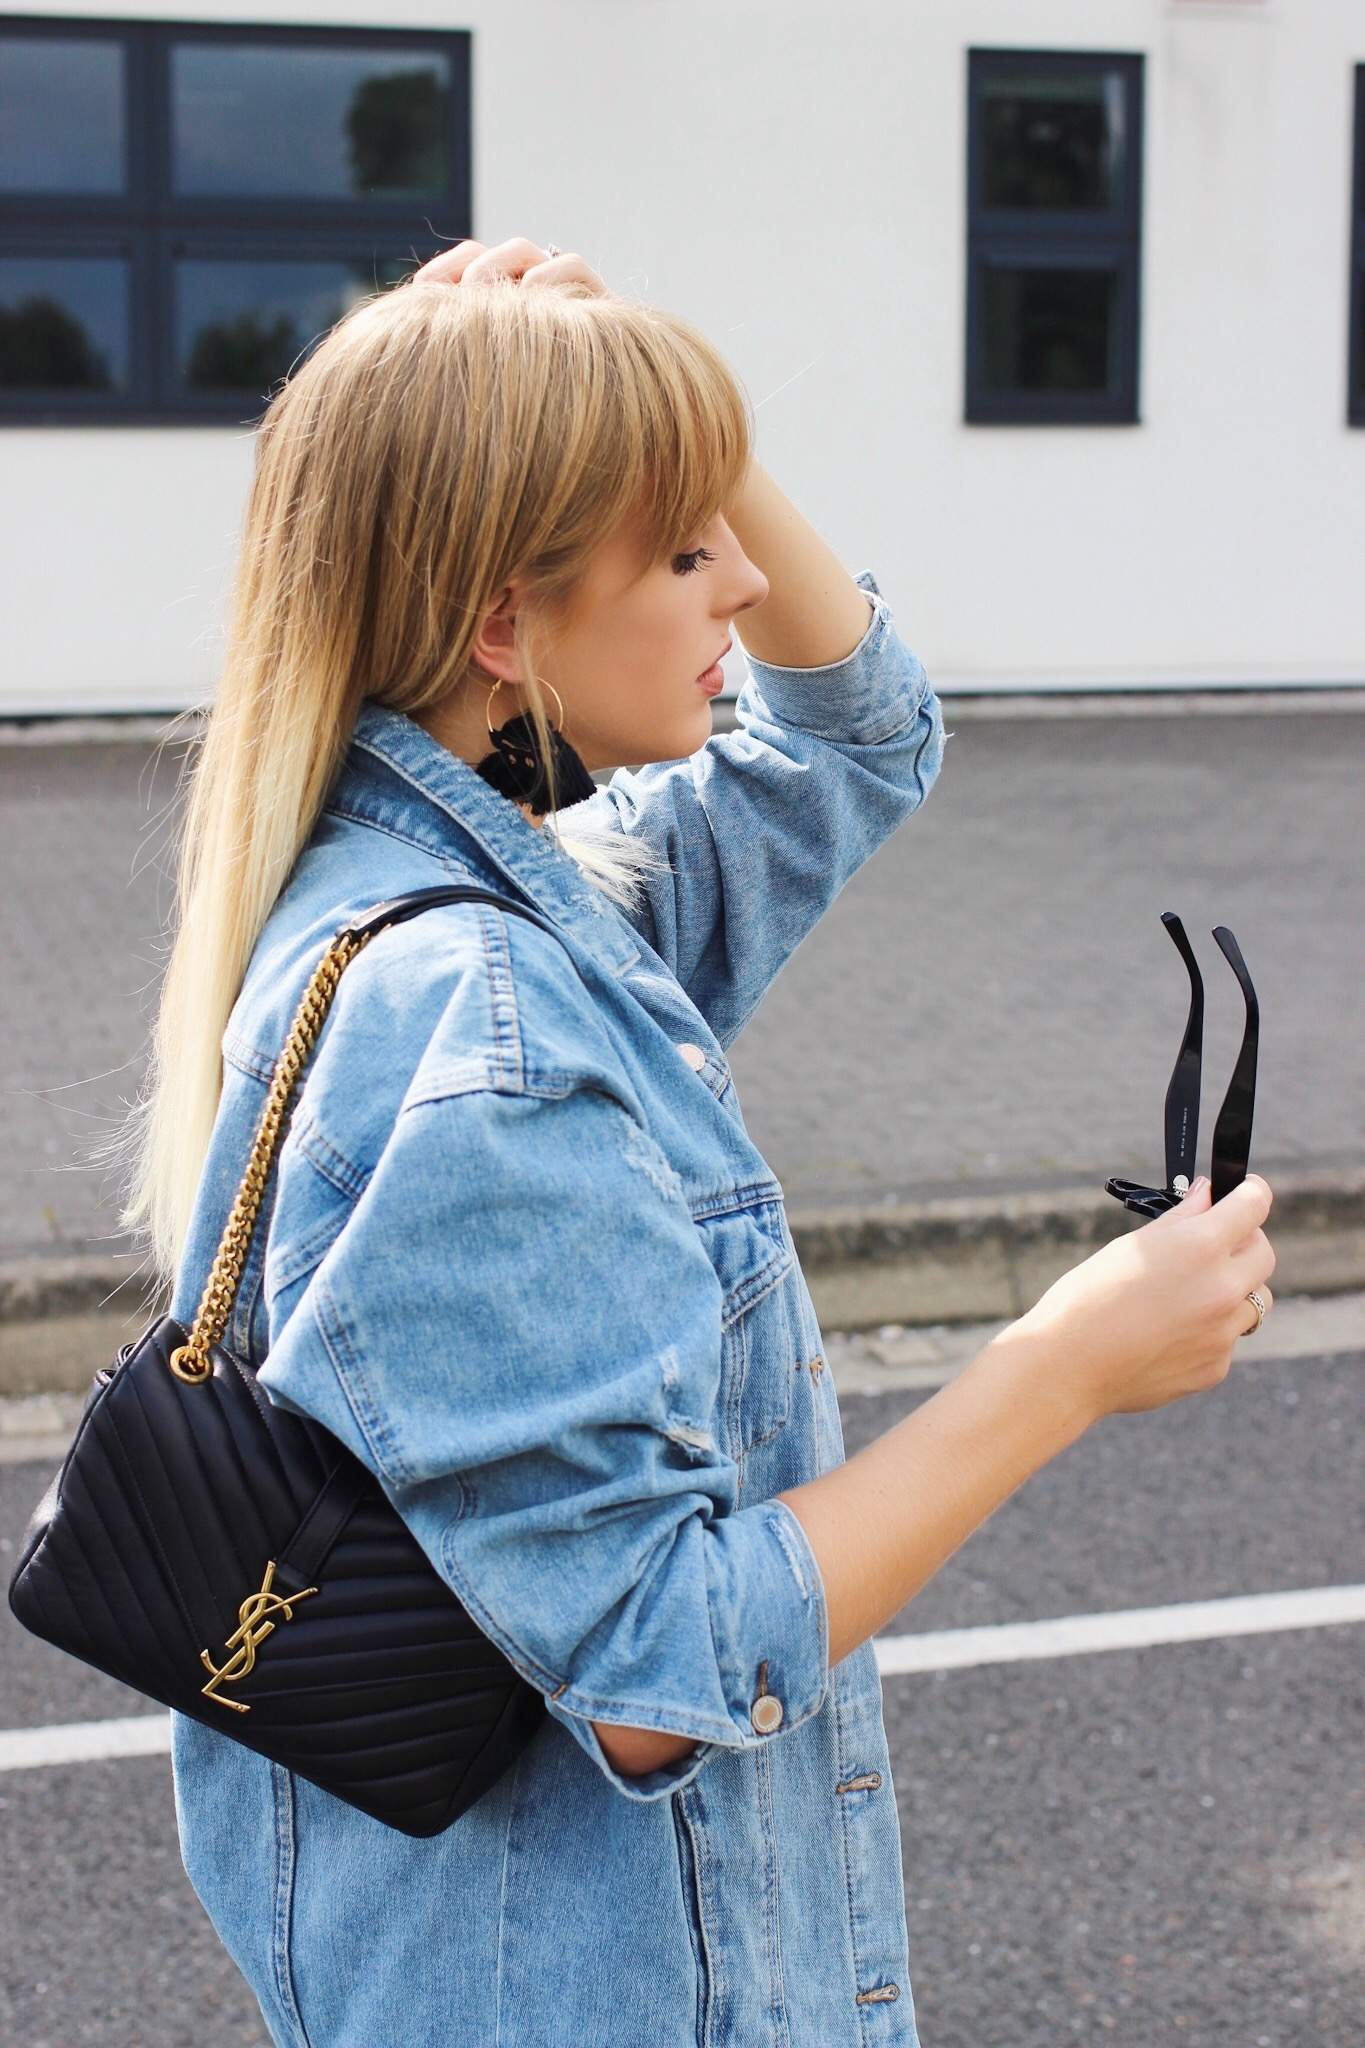 Oversized denim jacket on fashion blogger